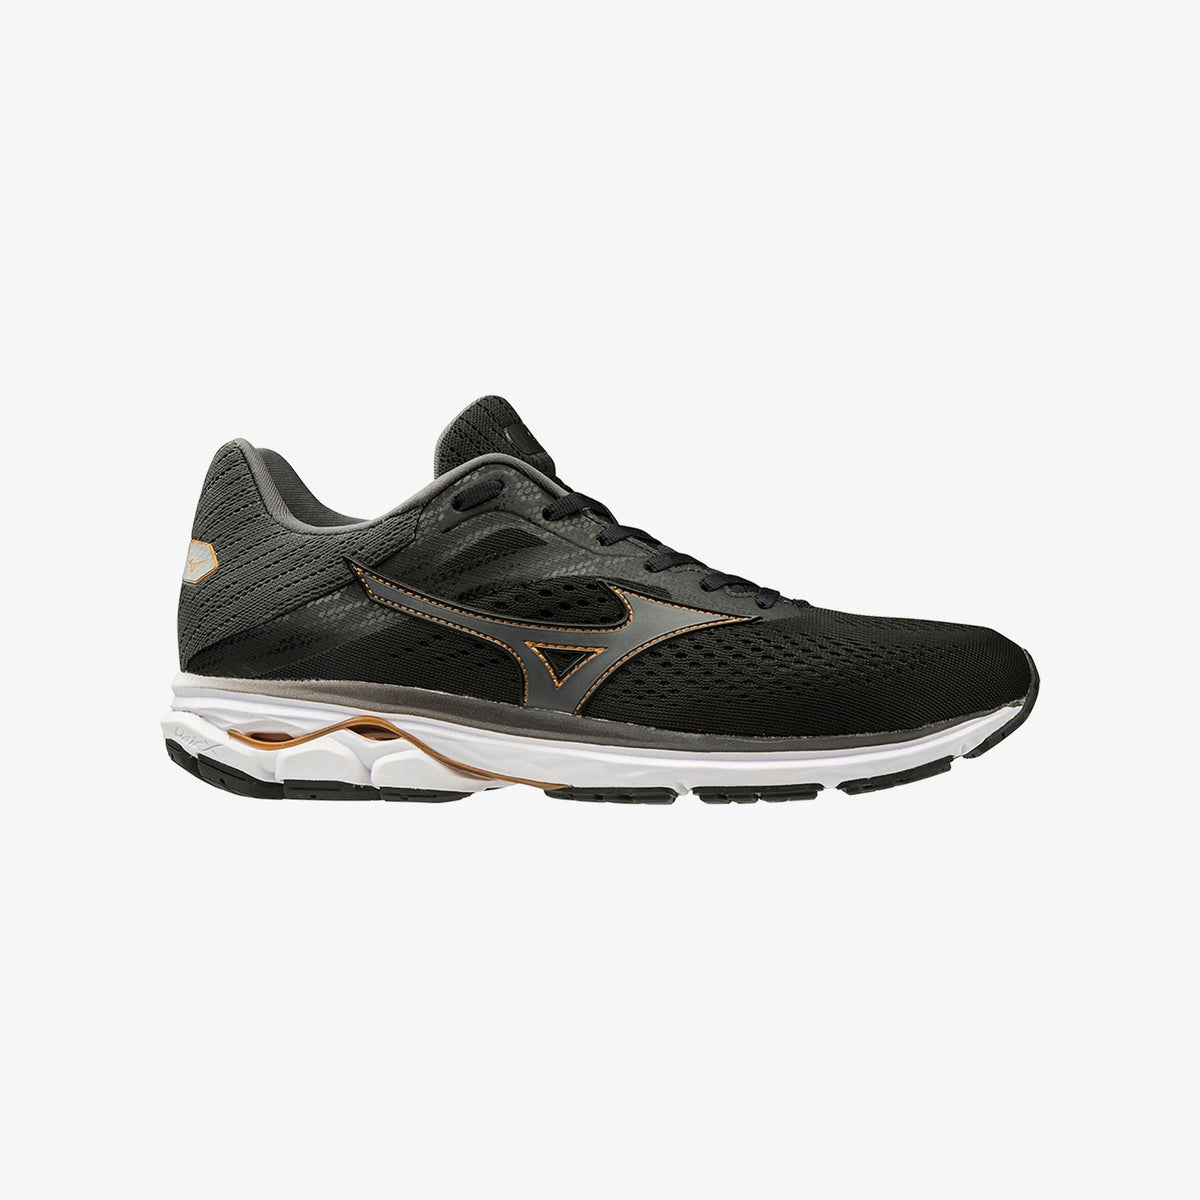 Mizuno Wave Rider 23 Mens